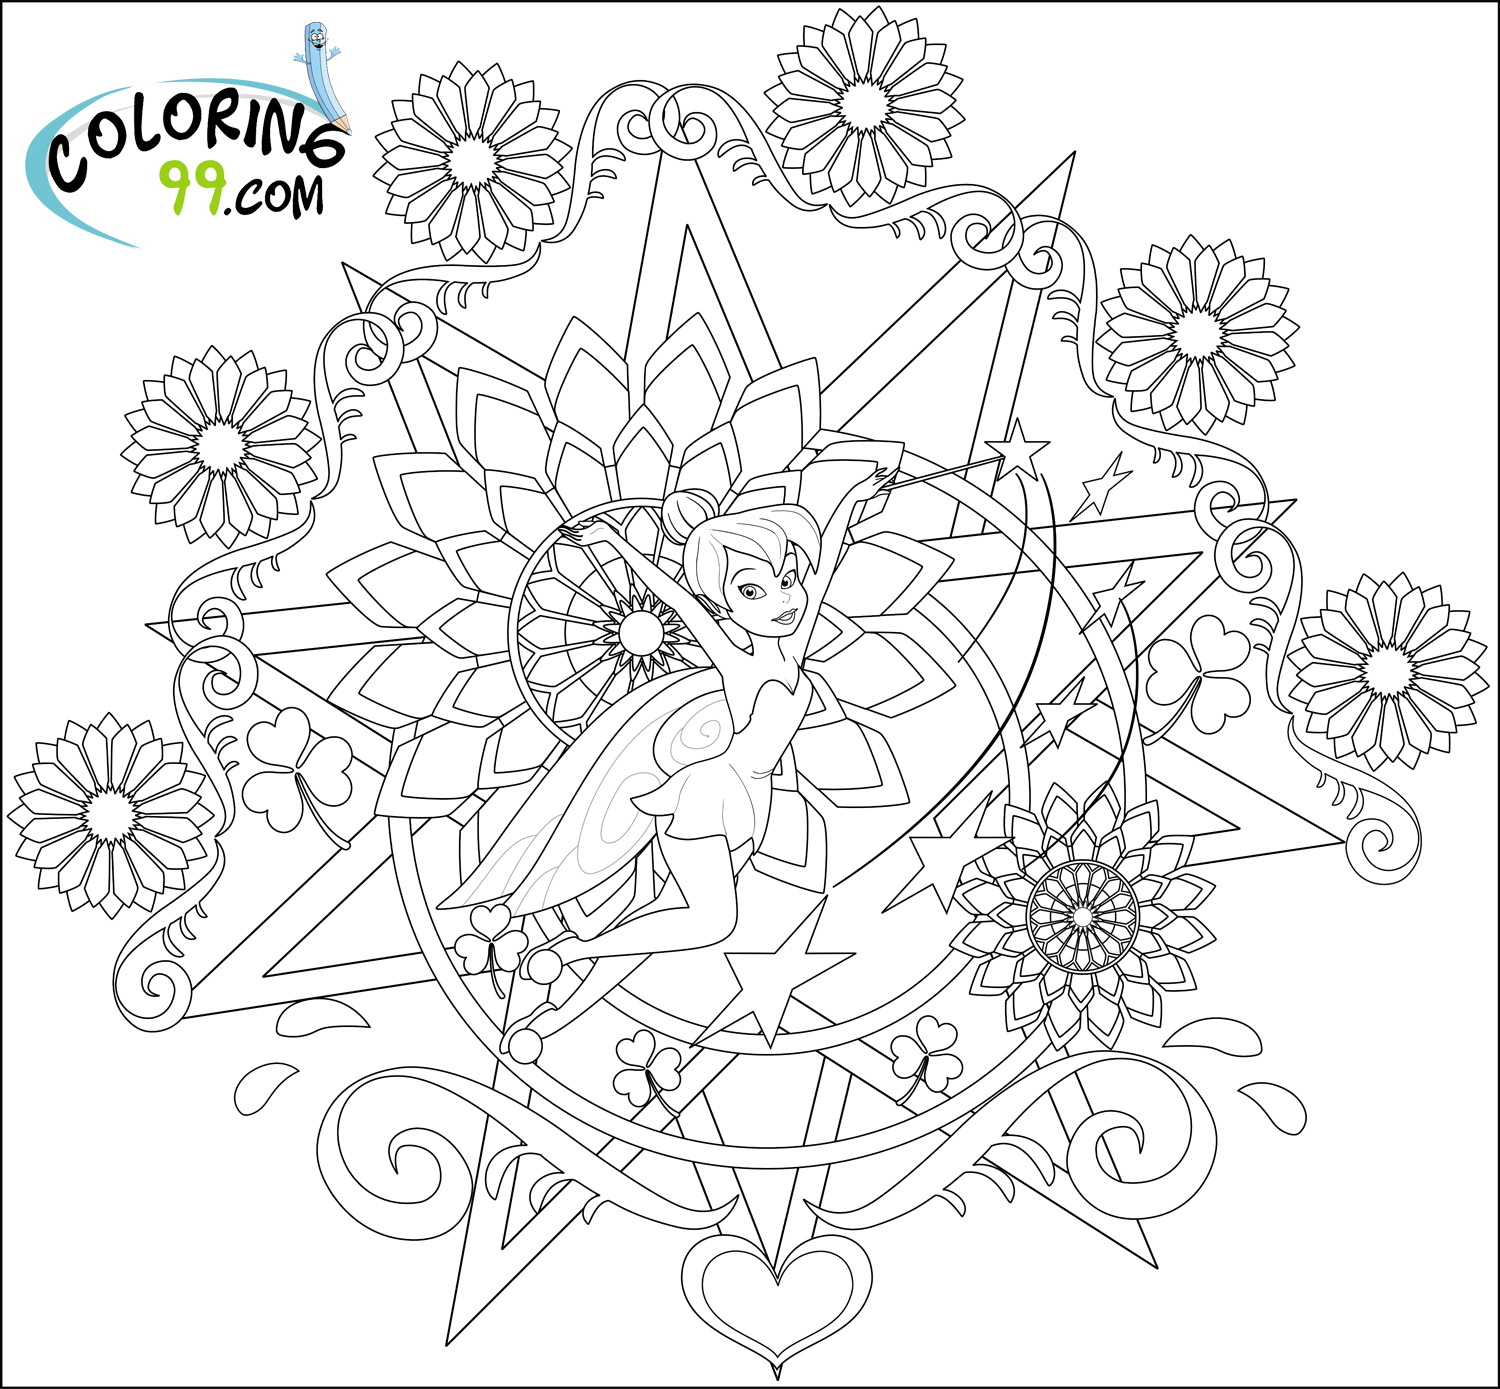 tinker bell coloring pages 30 tinkerbell coloring pages free coloring pages free tinker coloring pages bell